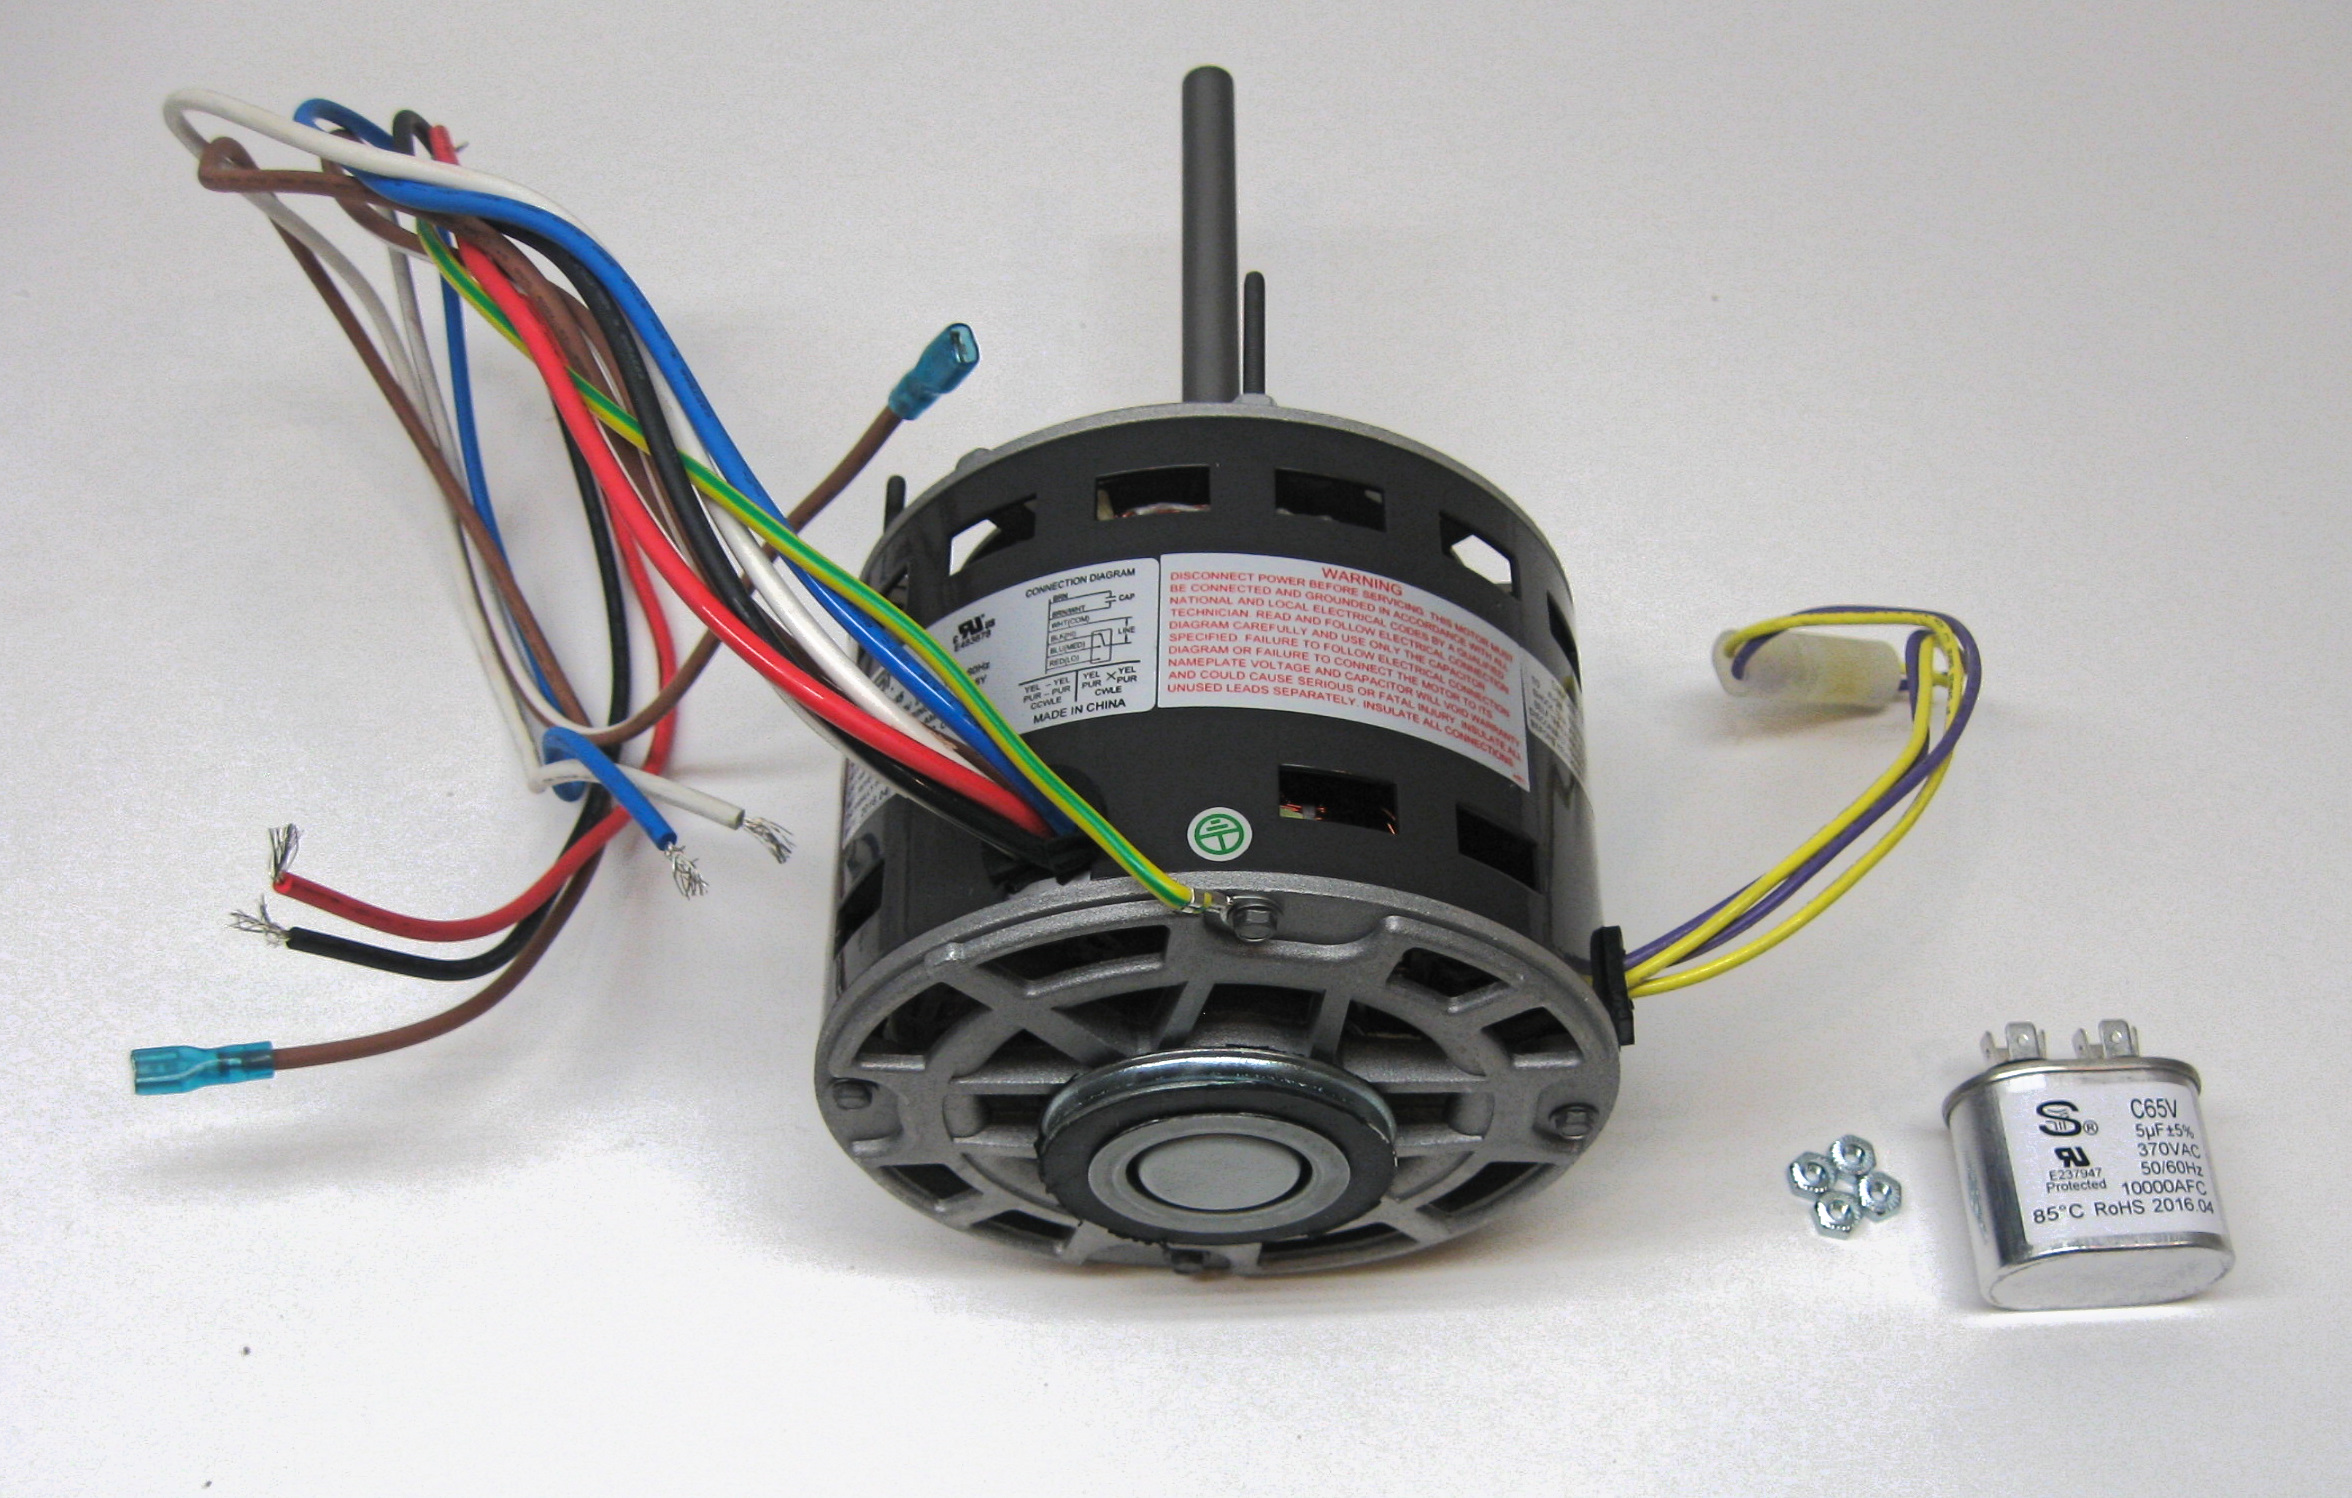 PartsConnect/NBK Condenser Fan Motor and Capacitor PCD923 on mars motor brown wire, mars motor catalog, mars 10589 wiring-diagram, crankcase heater wiring diagram, run capacitors wiring diagram, mars 10585 wiring-diagram, mars relay wiring diagram, mars condenser fan motor schematic, mars motors 10463, furnace blower wiring diagram, mars 10588 wiring-diagram, mars transformer wiring diagram,